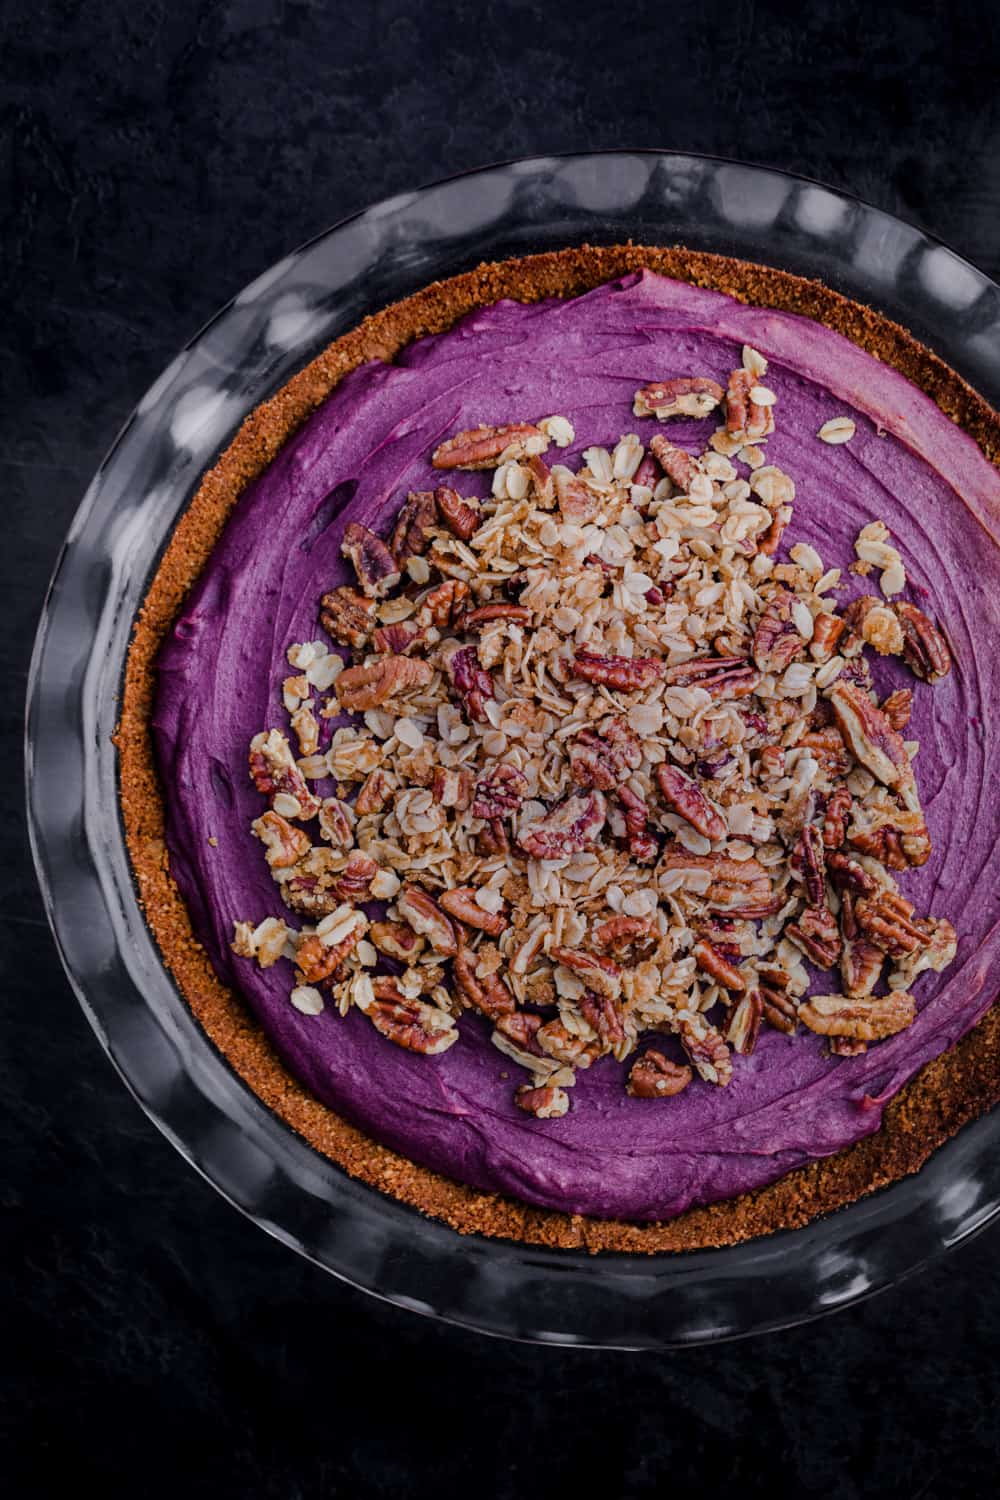 Purple sweet potato pie topped with pecan streusel and all done! Just out of oven; overhead shot on a black background.